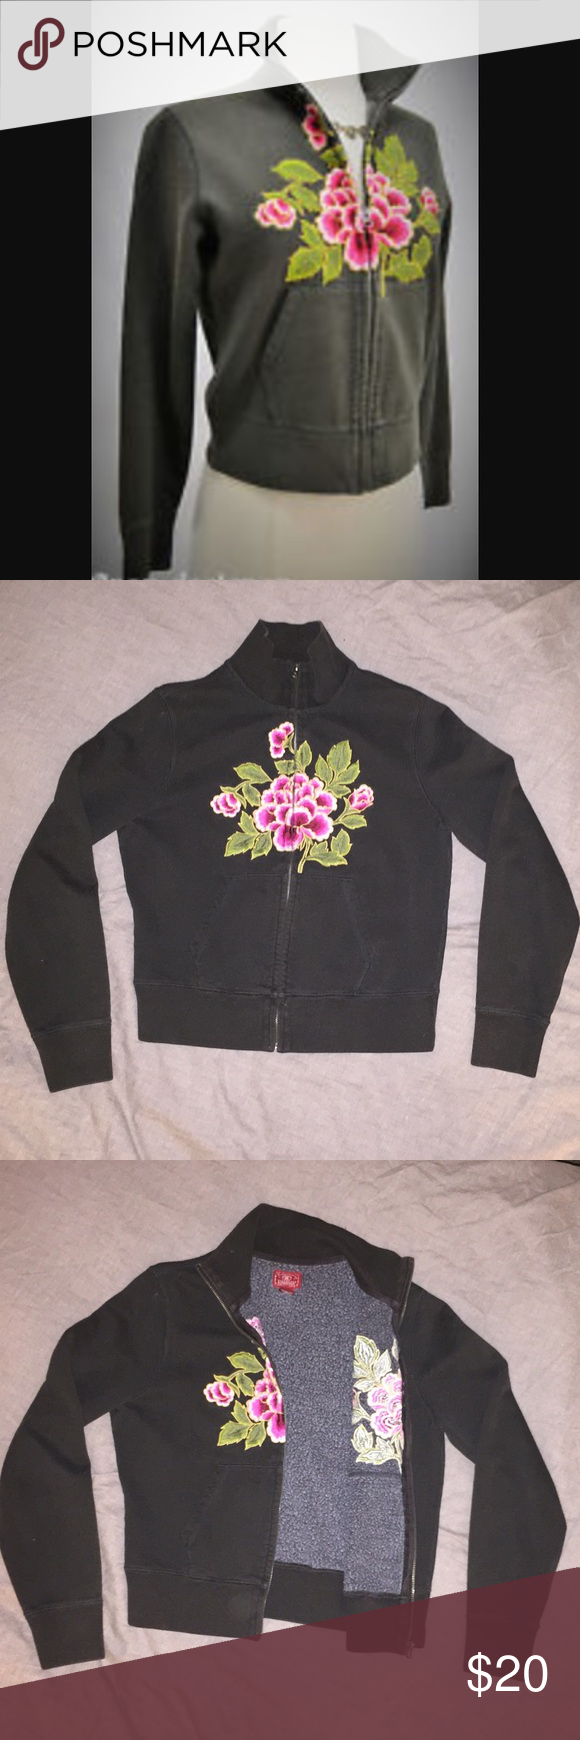 Lucky Brand Floral Embroidered Zip Up Sweater Black cotton sweater with zip front joining both sides of a beautifully embroidered pink flower. Size is a large but fits more like a small-medium. Lucky Brand Sweaters